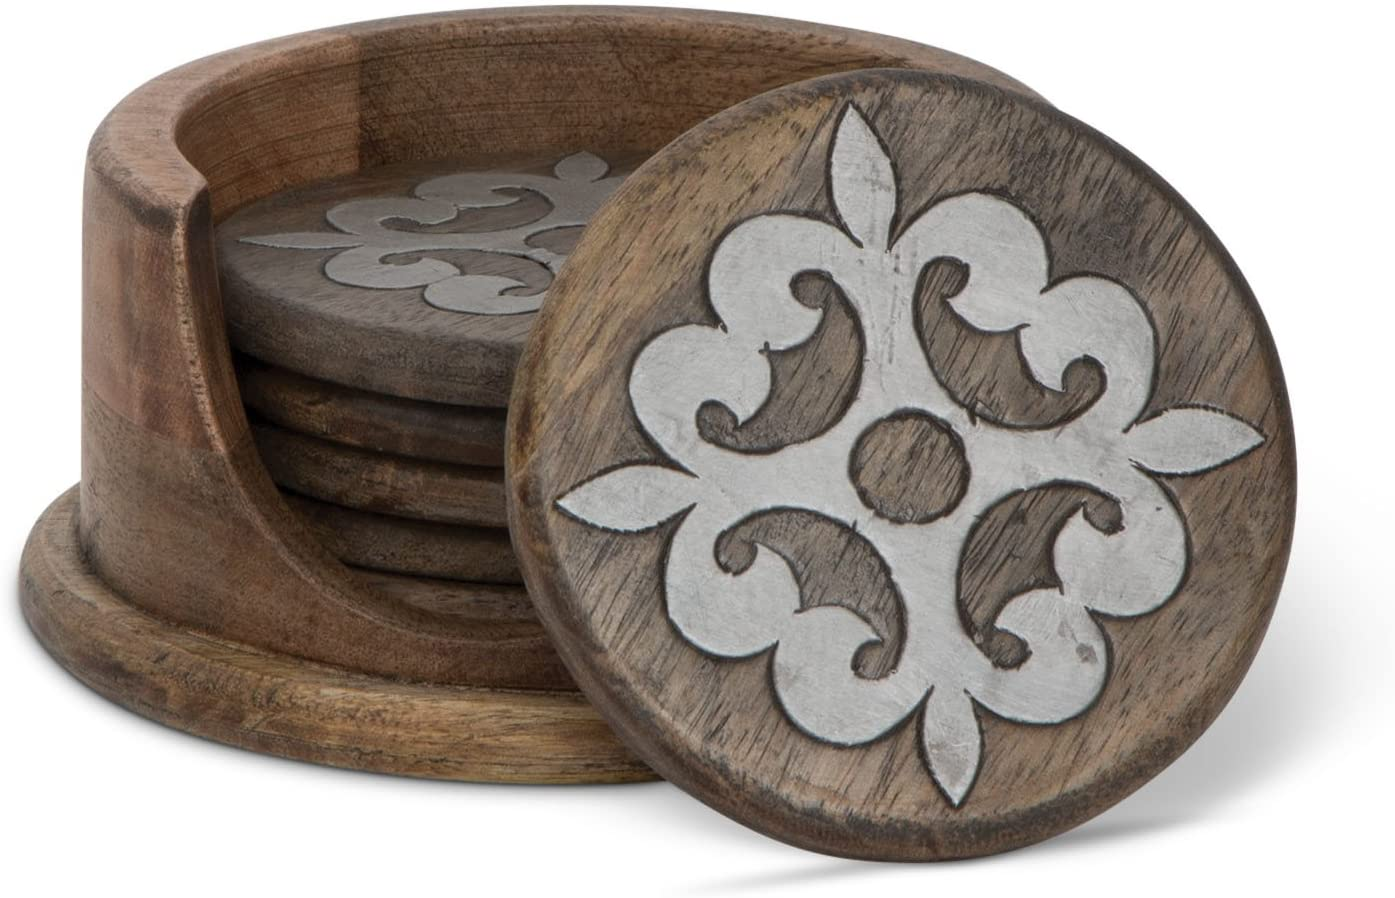 Wood Coaster (Set of 6)